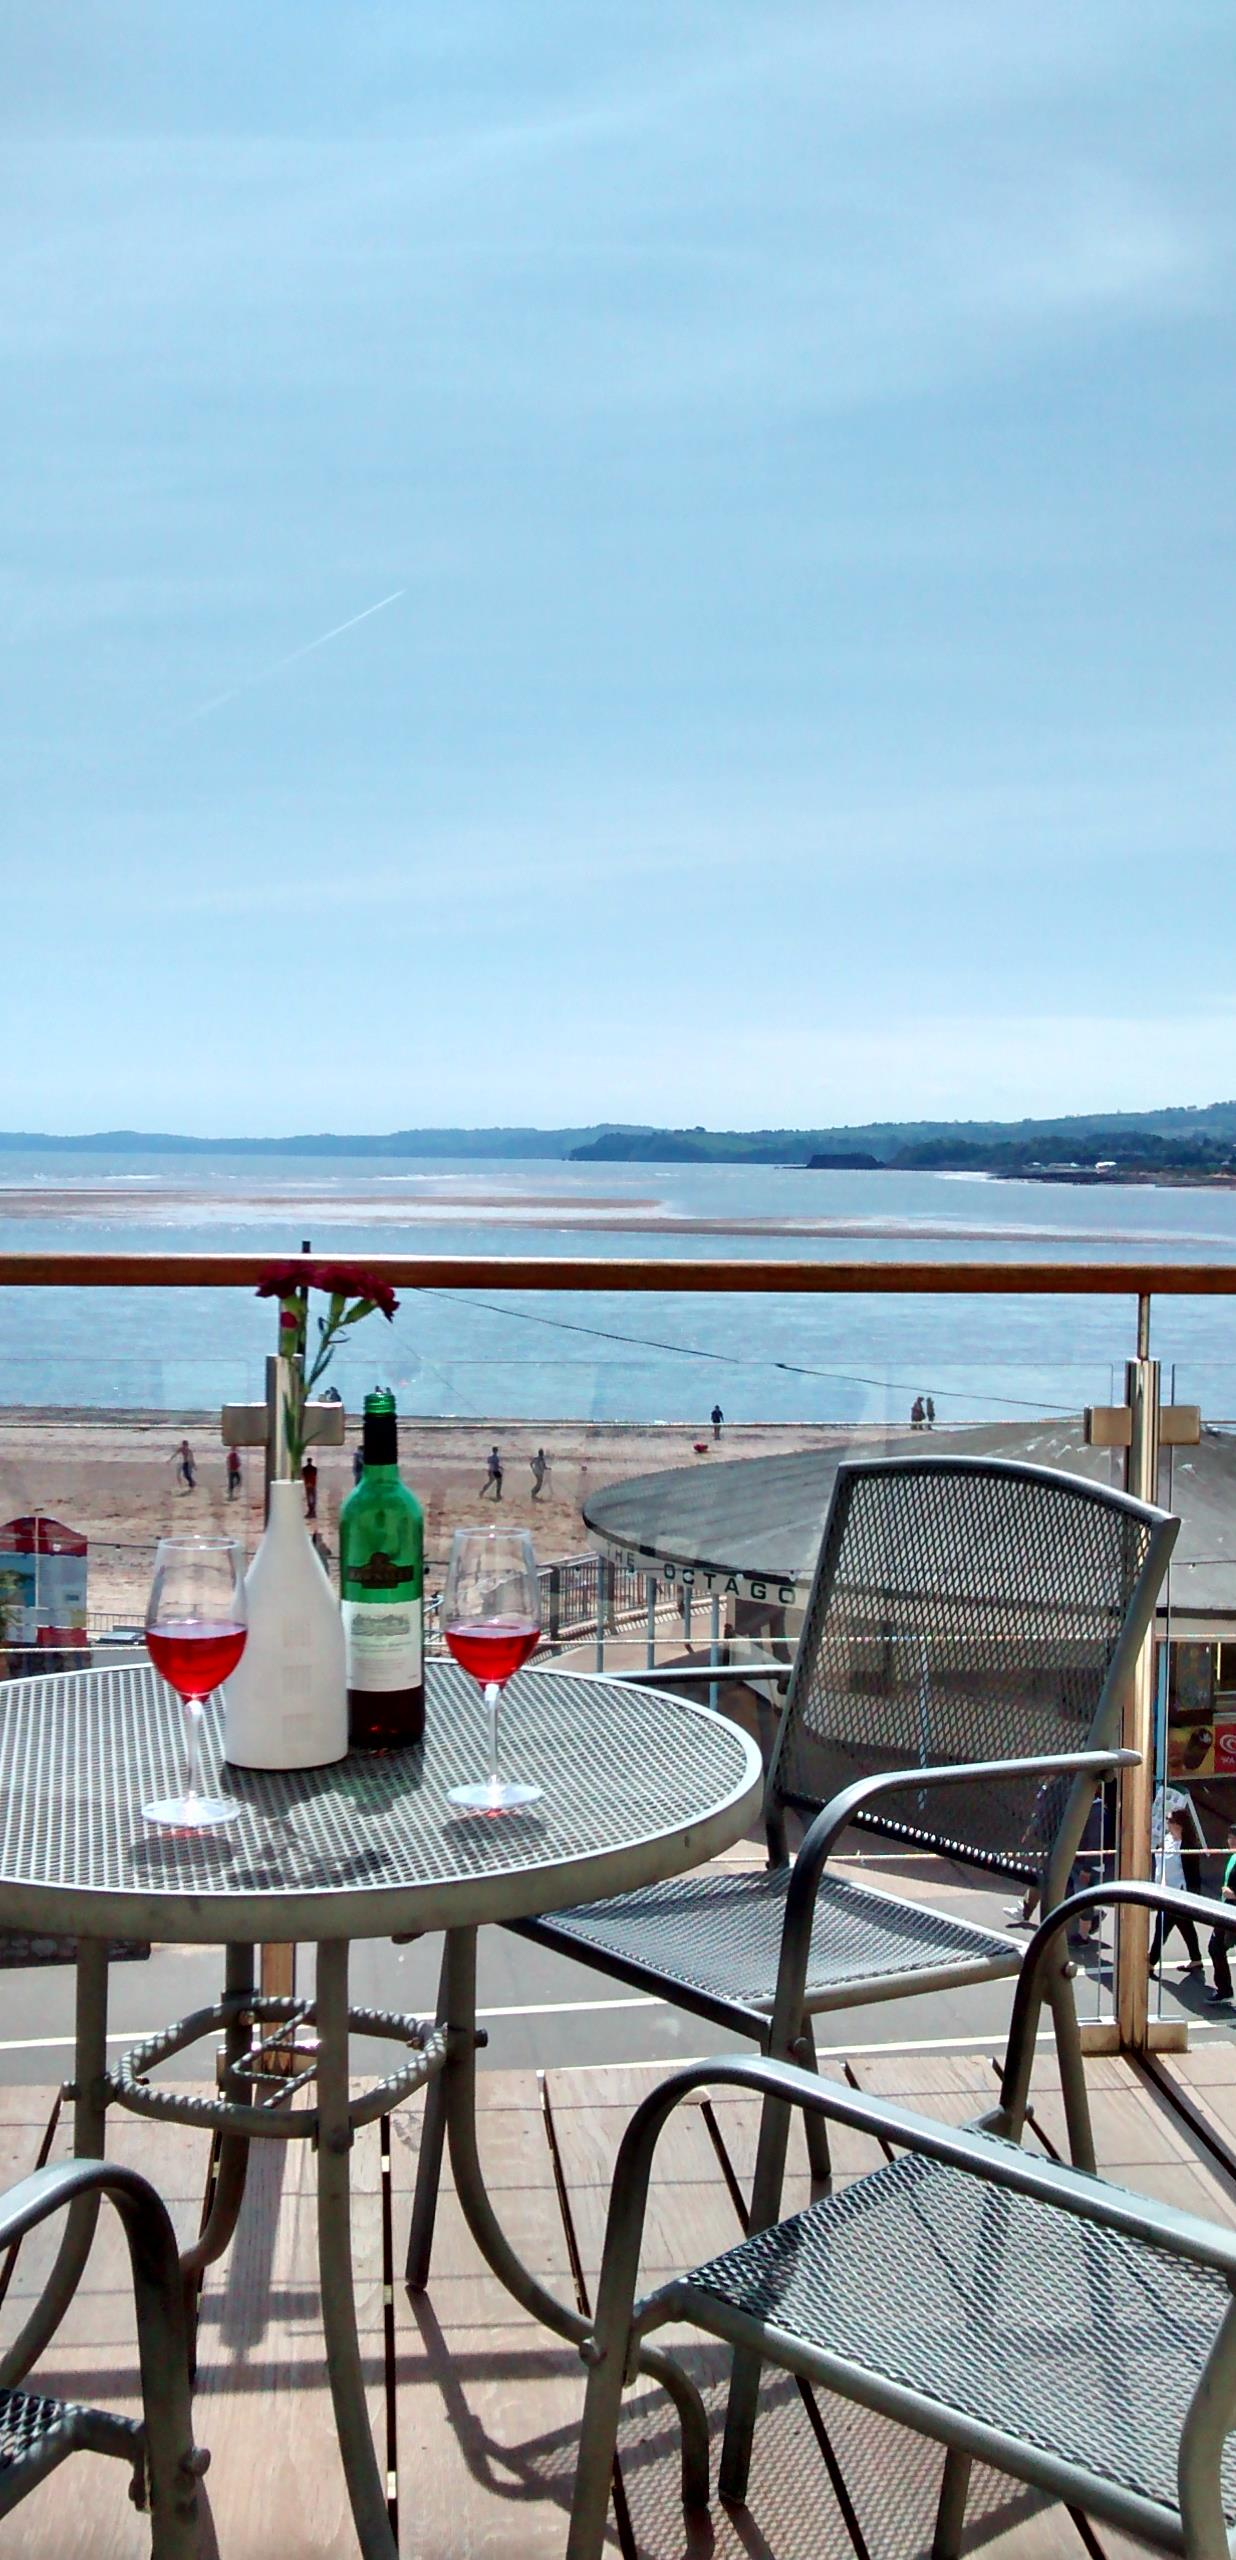 View across balcony table with wine bottle out to sea